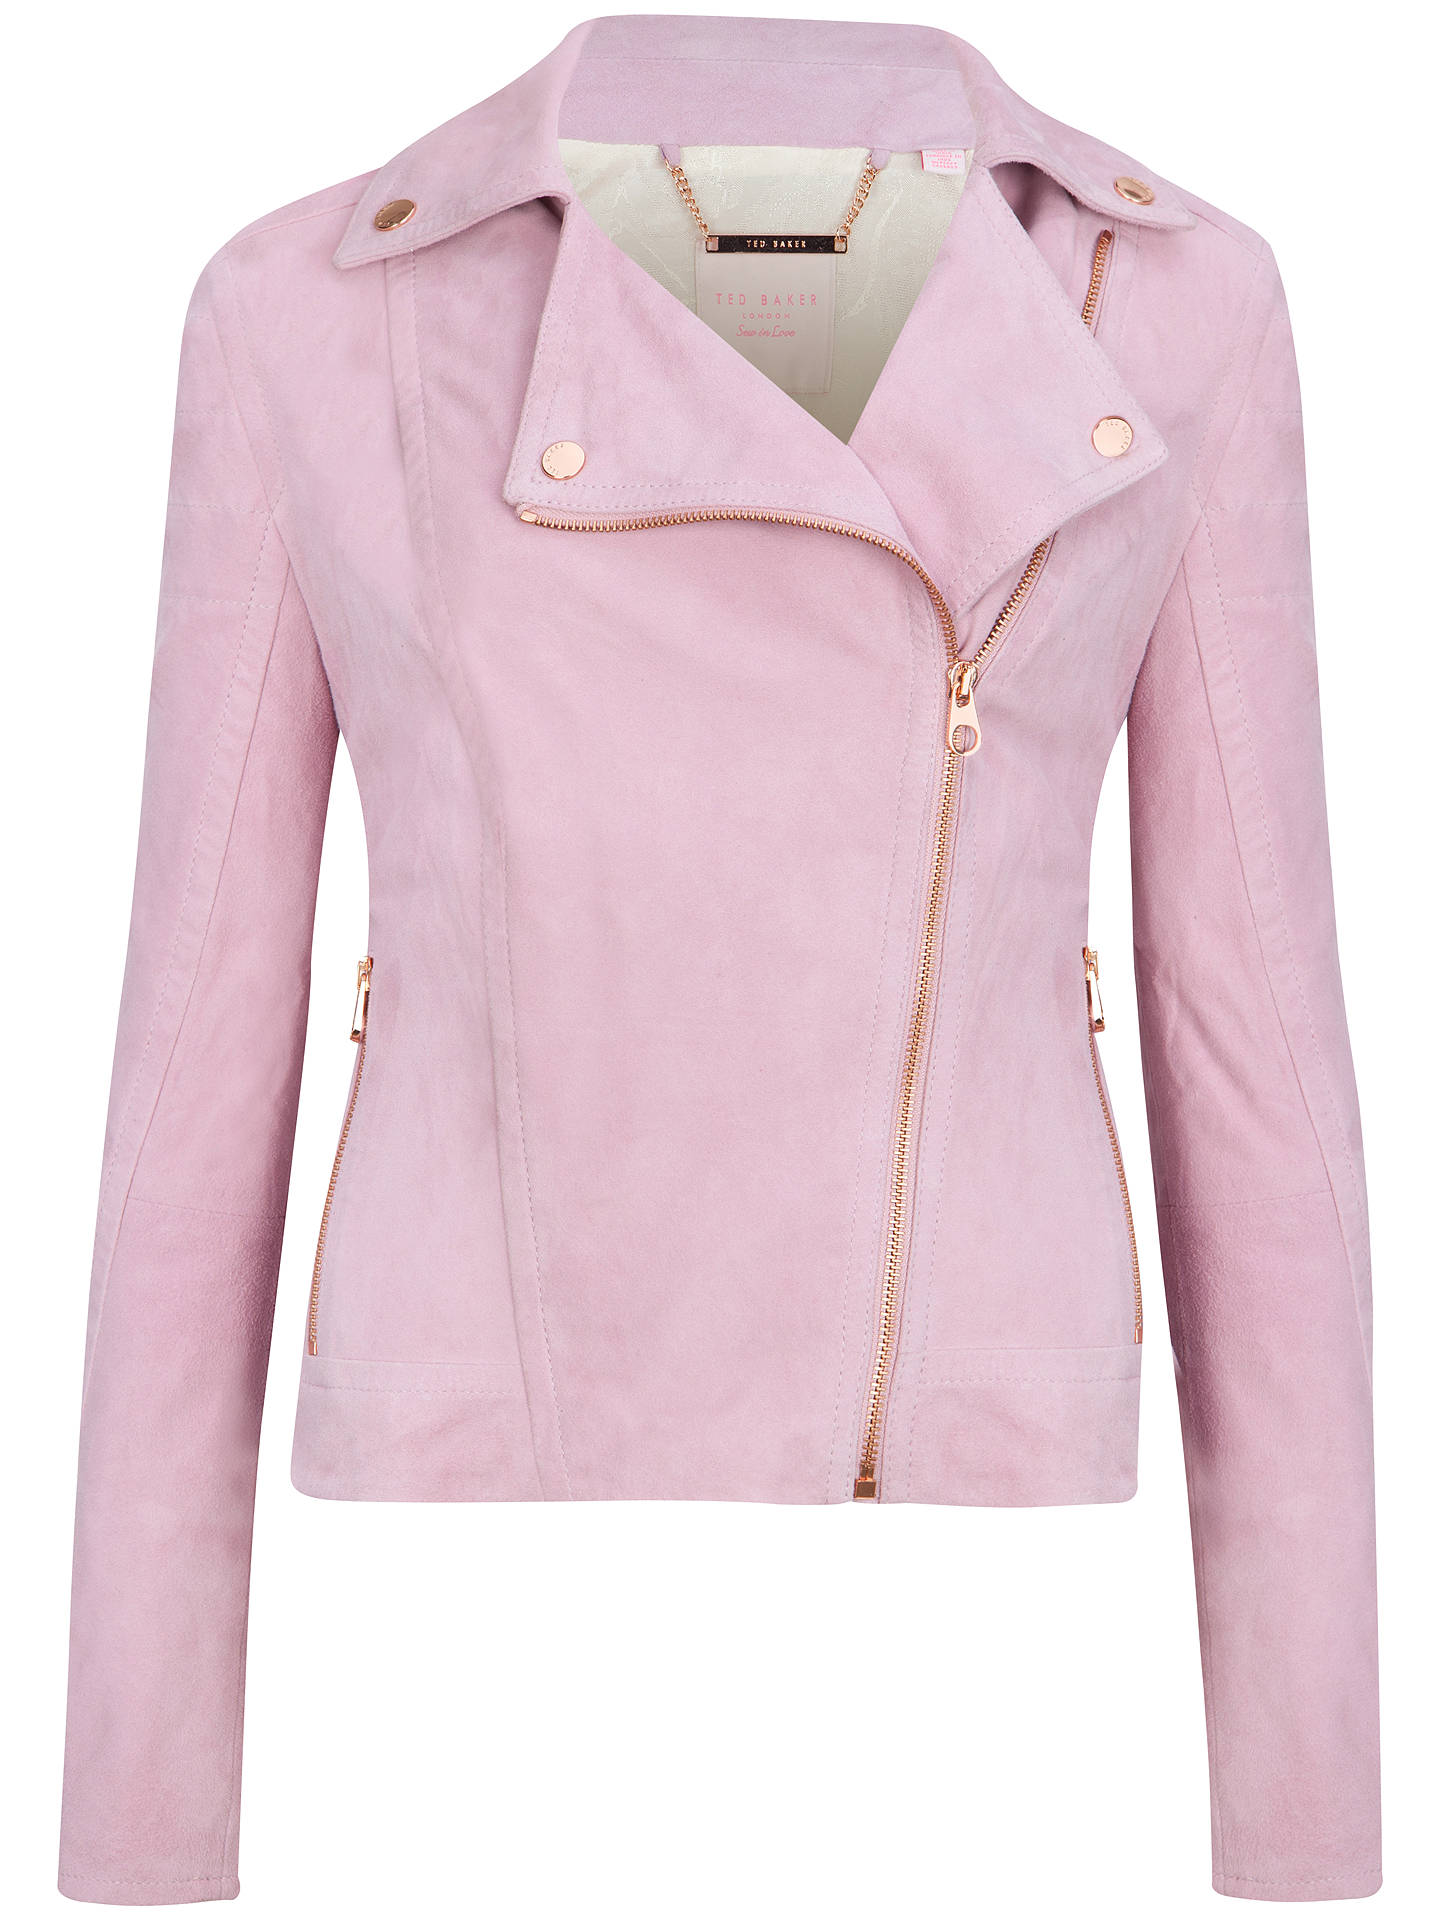 new high quality exceptional range of colors Sales promotion Ted Baker Suede Biker Jacket, Pale Pink at John Lewis & Partners